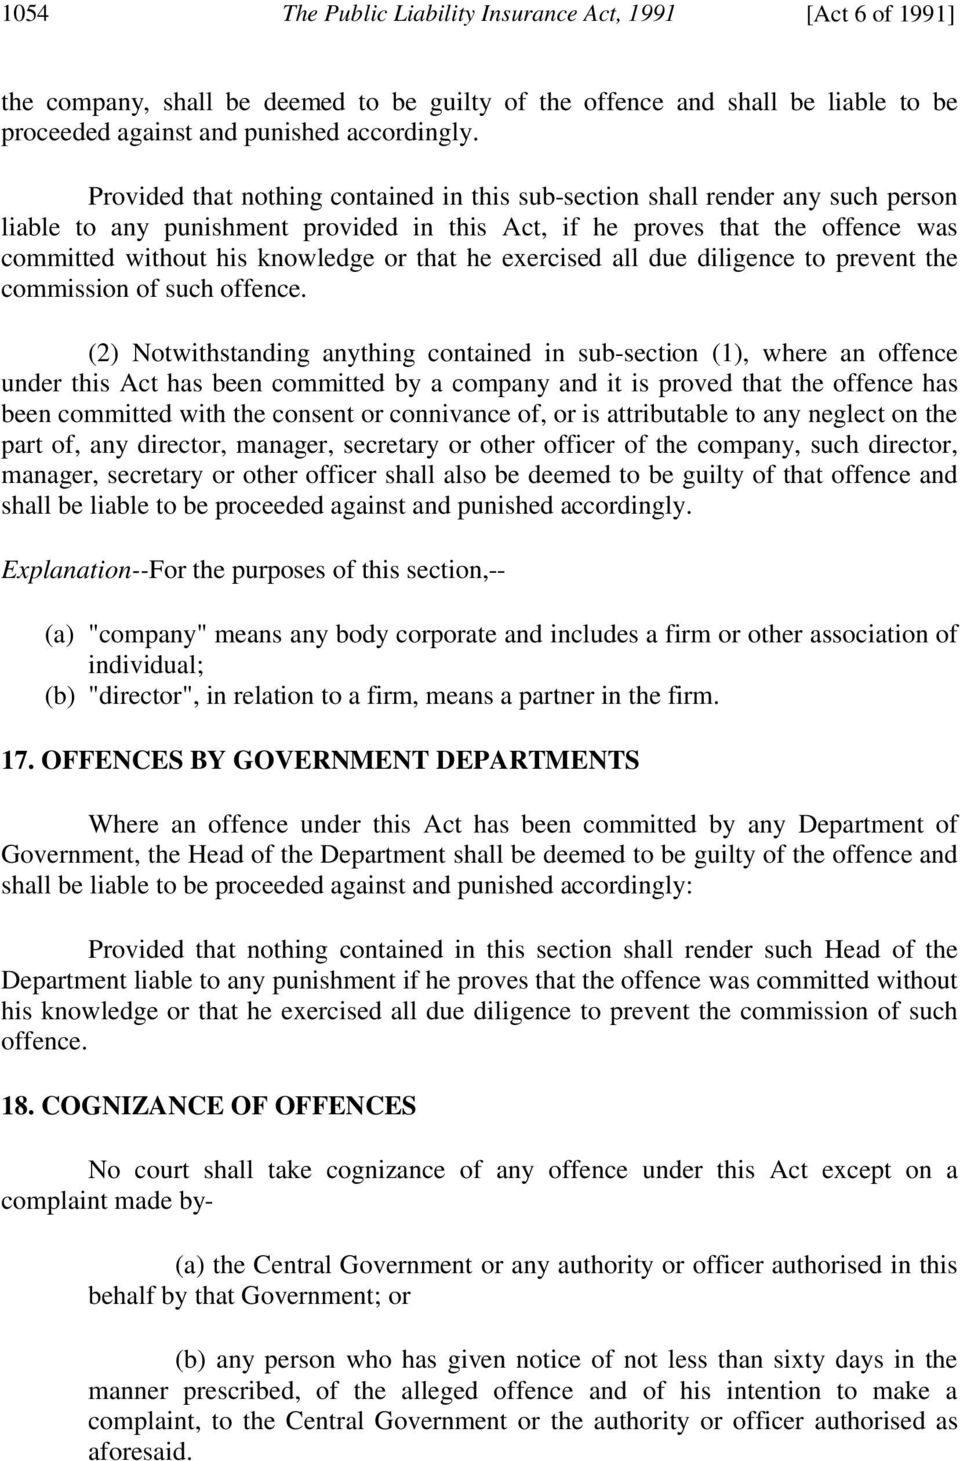 that he exercised all due diligence to prevent the commission of such offence.